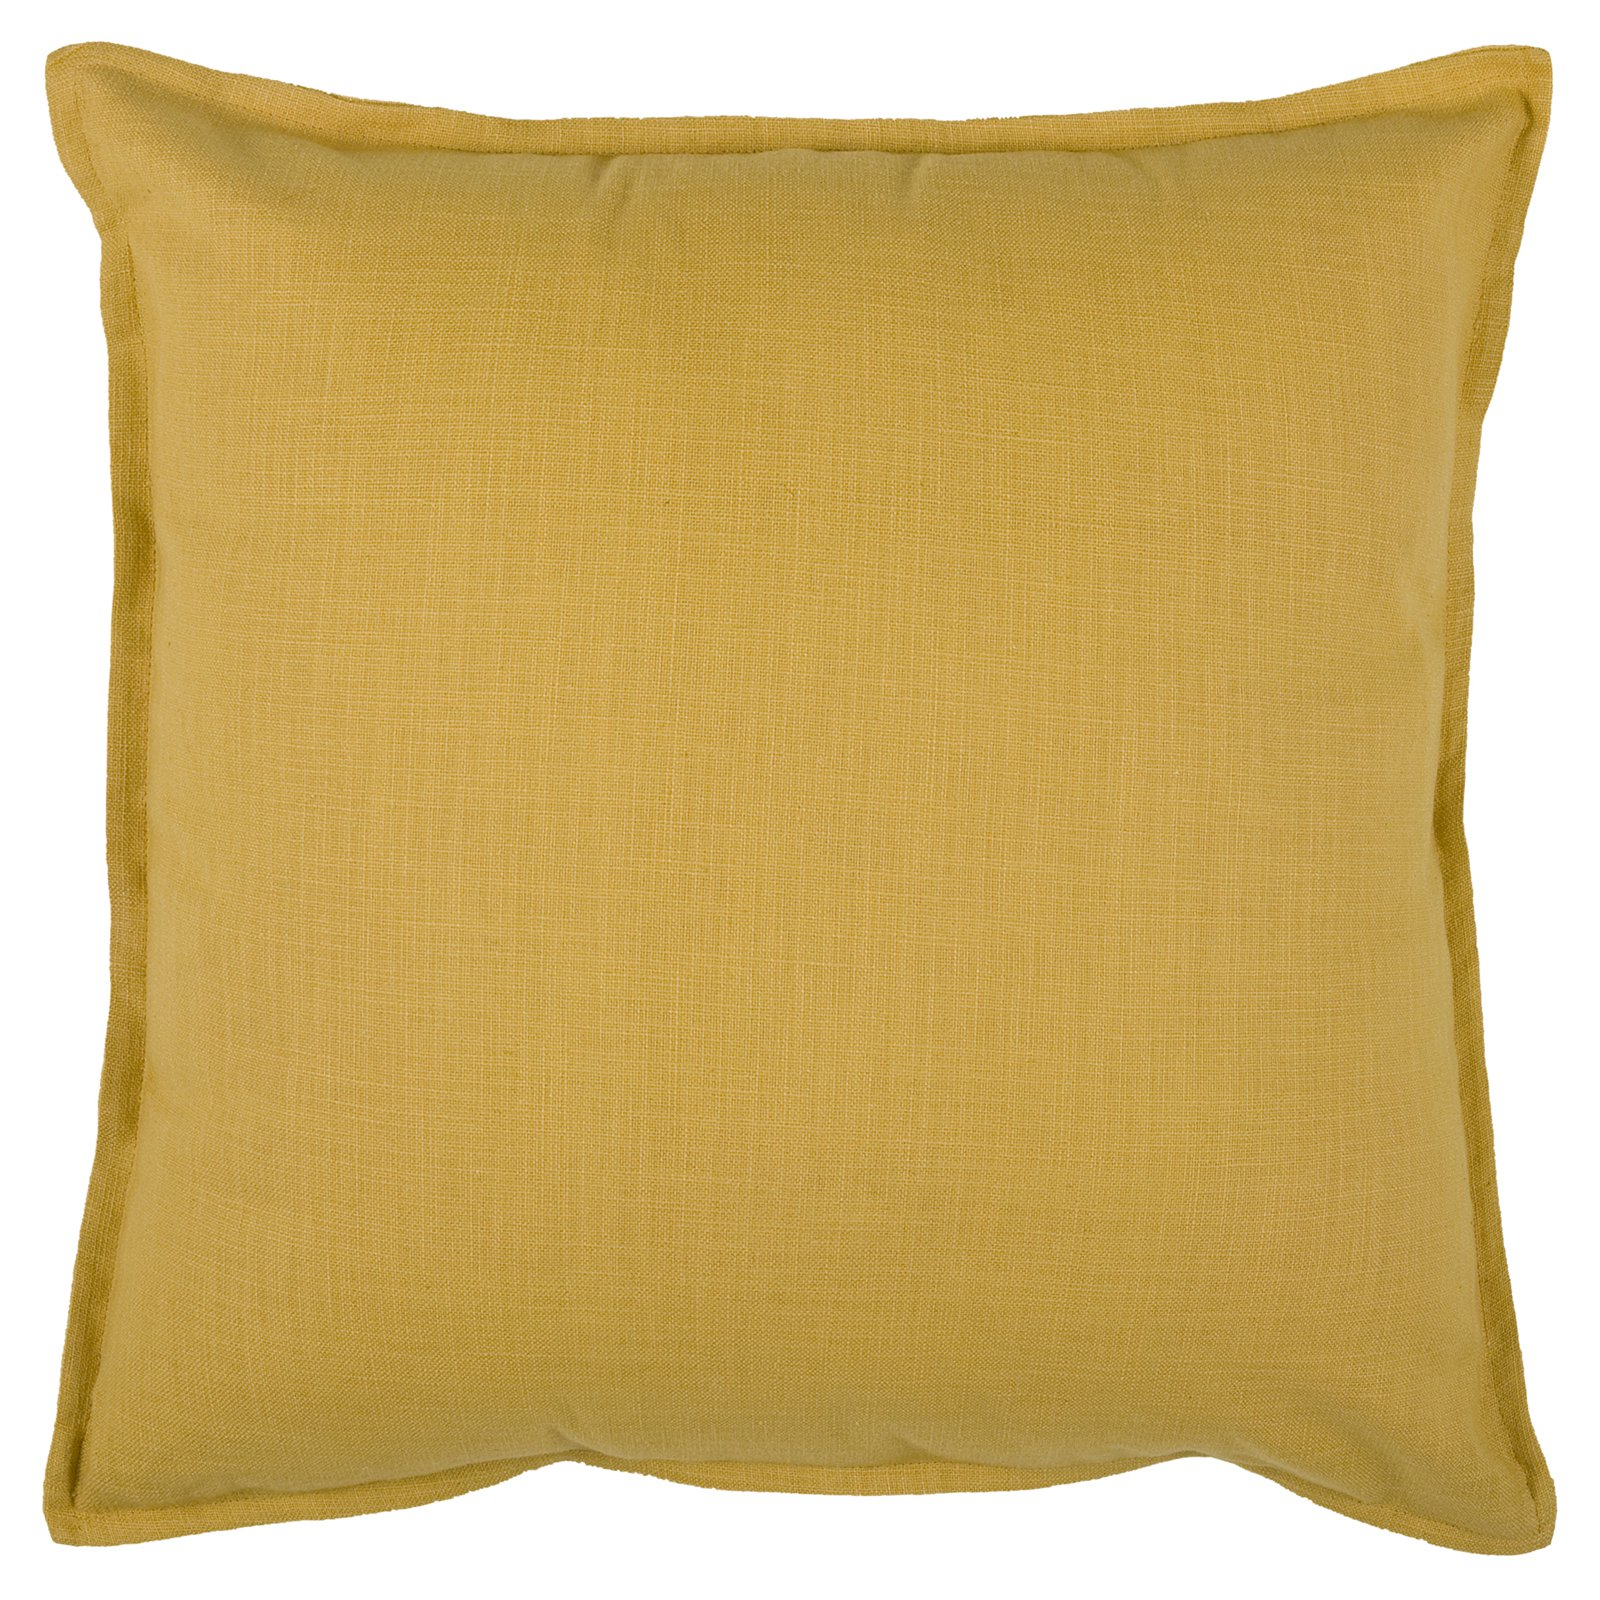 "Rizzy Home solid20"" x 20""Cotton decorative filled pillow"